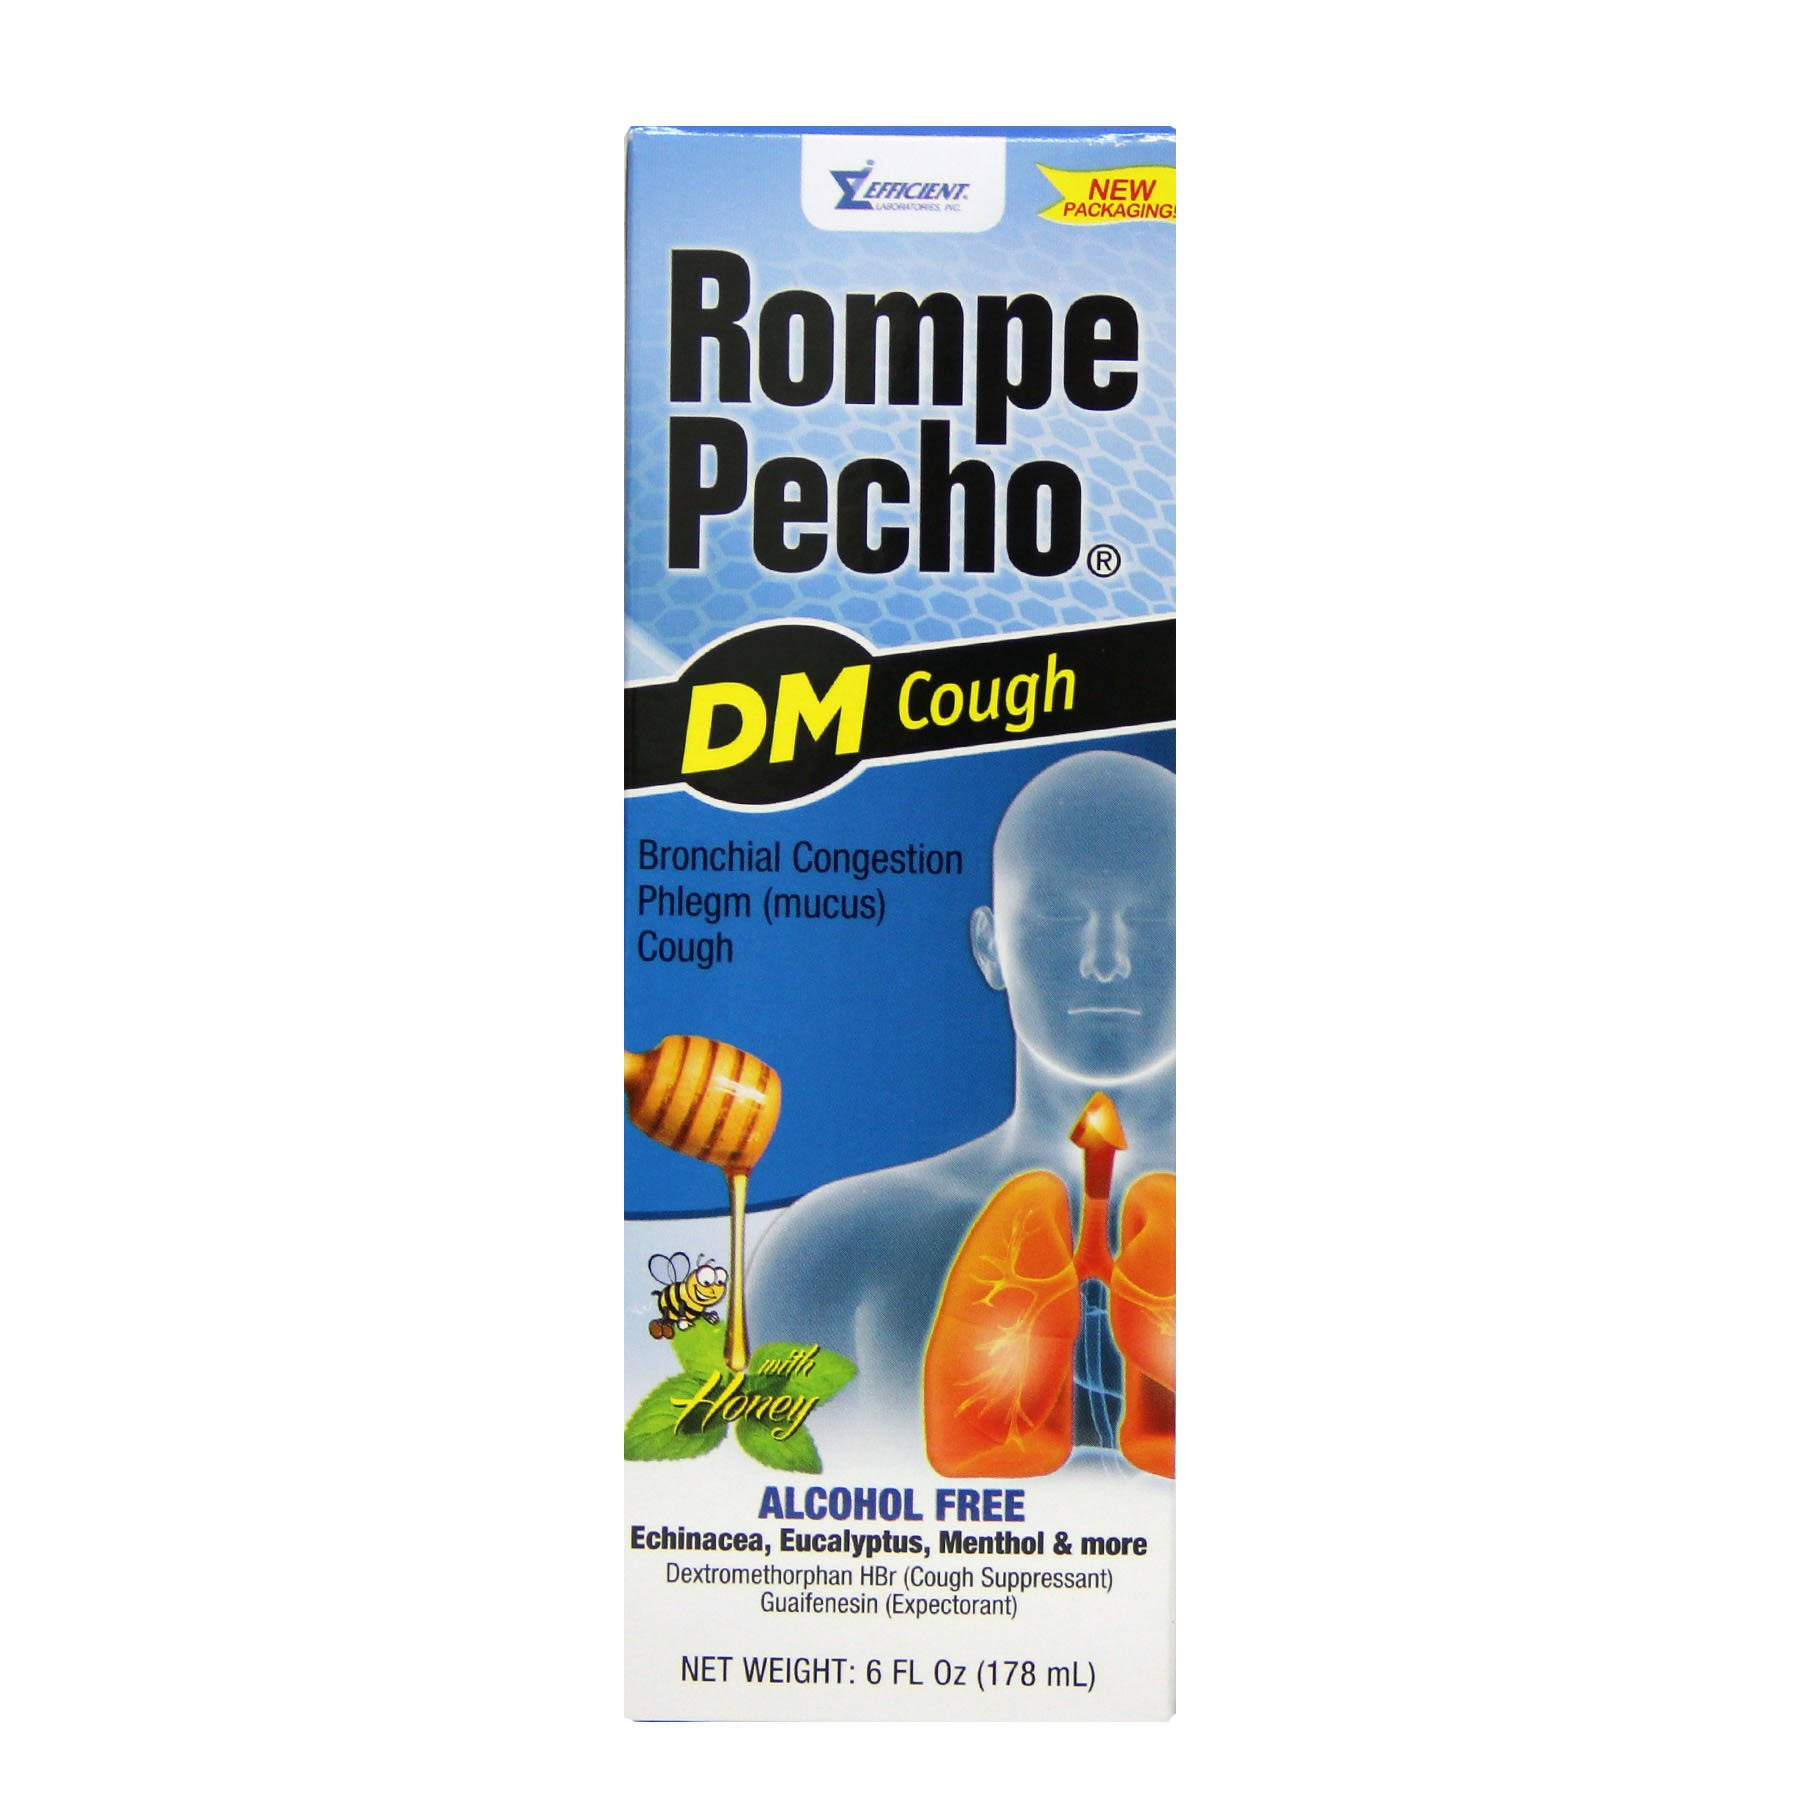 Rompe Pecho DM Cough Relief Syrup